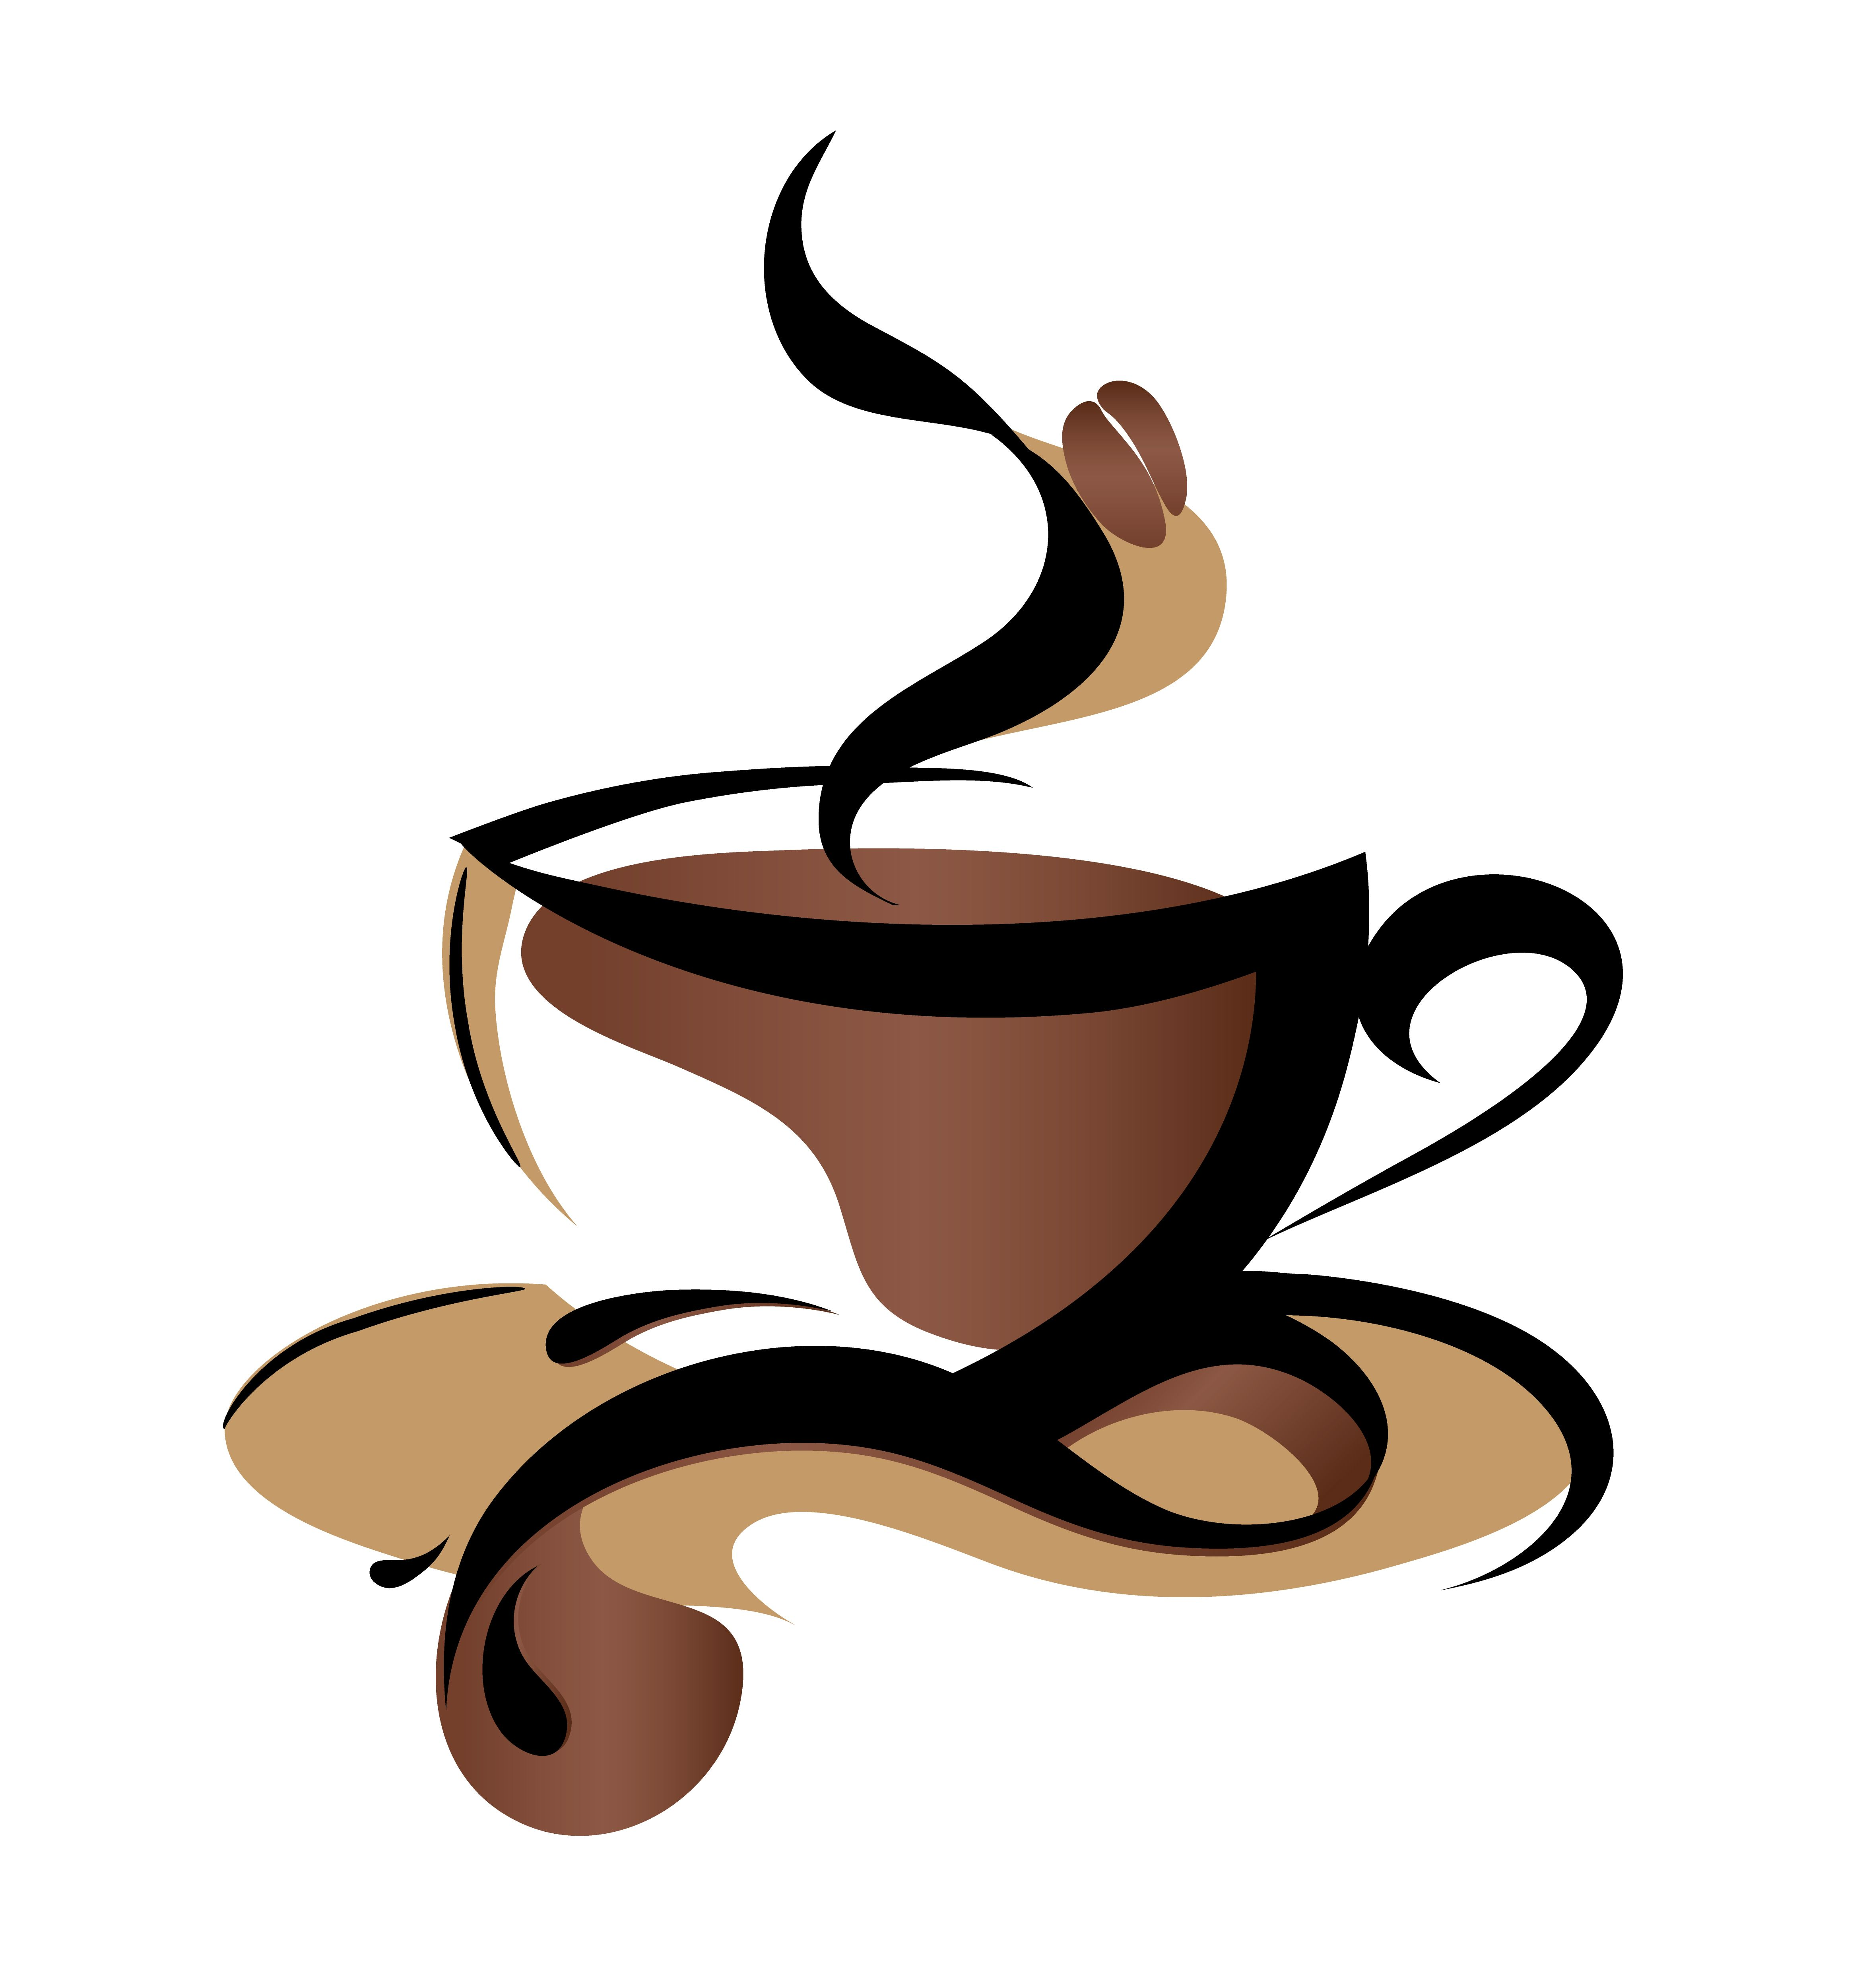 Creamer clipart clip art freeuse download Pin by J-TheVisionary on Cafe Vita | Coffee clipart, Coffee cup ... clip art freeuse download